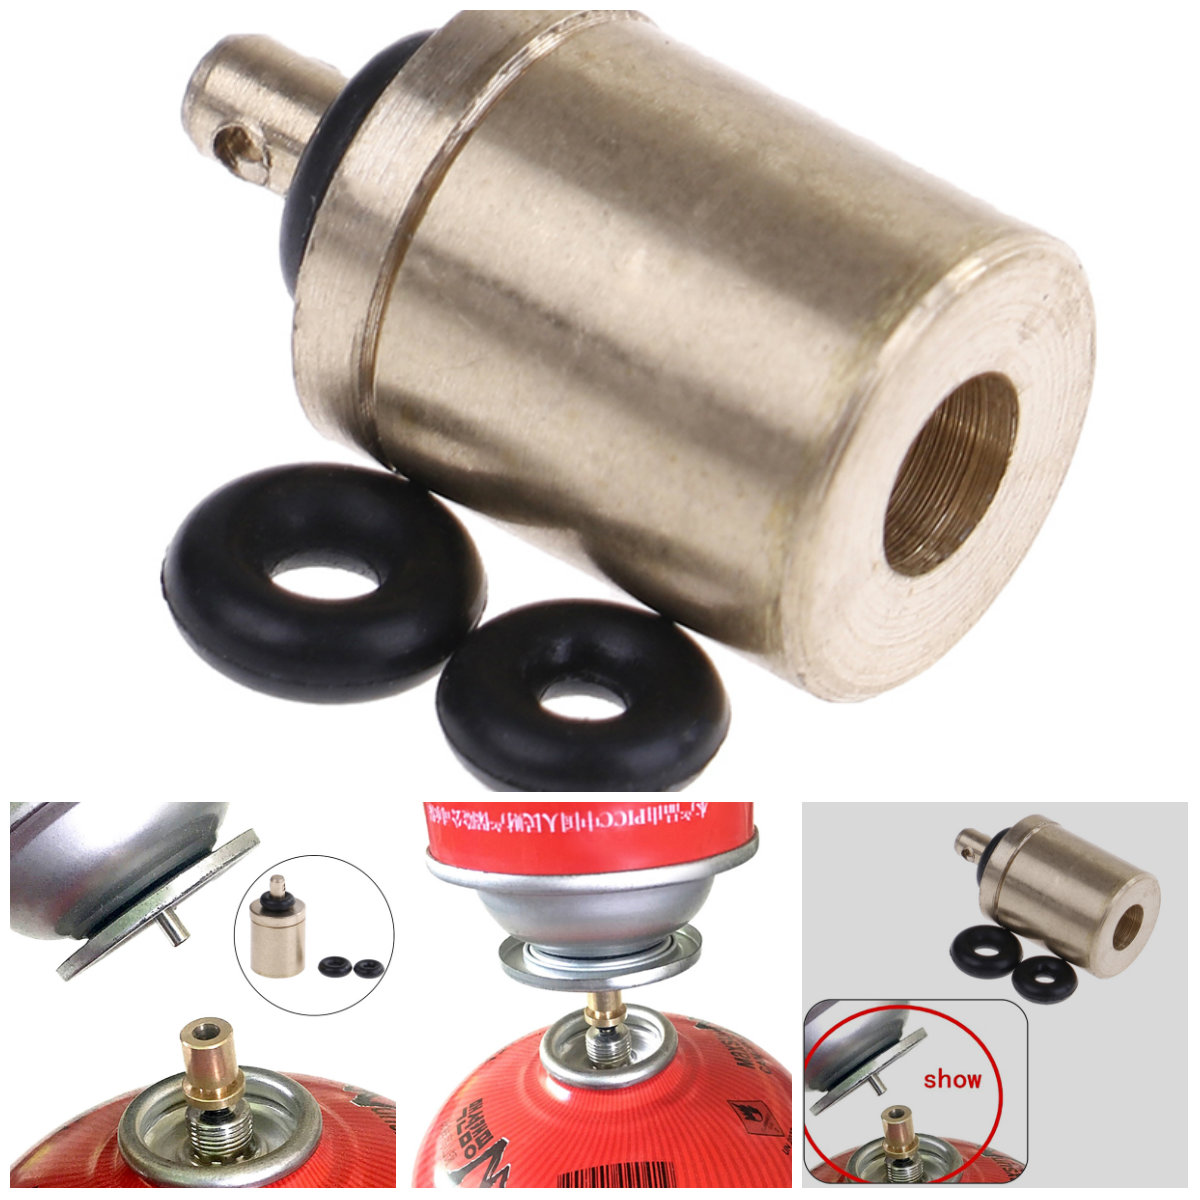 Outdoor Camping Hiking Stove Gas Burner Gas Cylinder Tank Refill Adapter SK